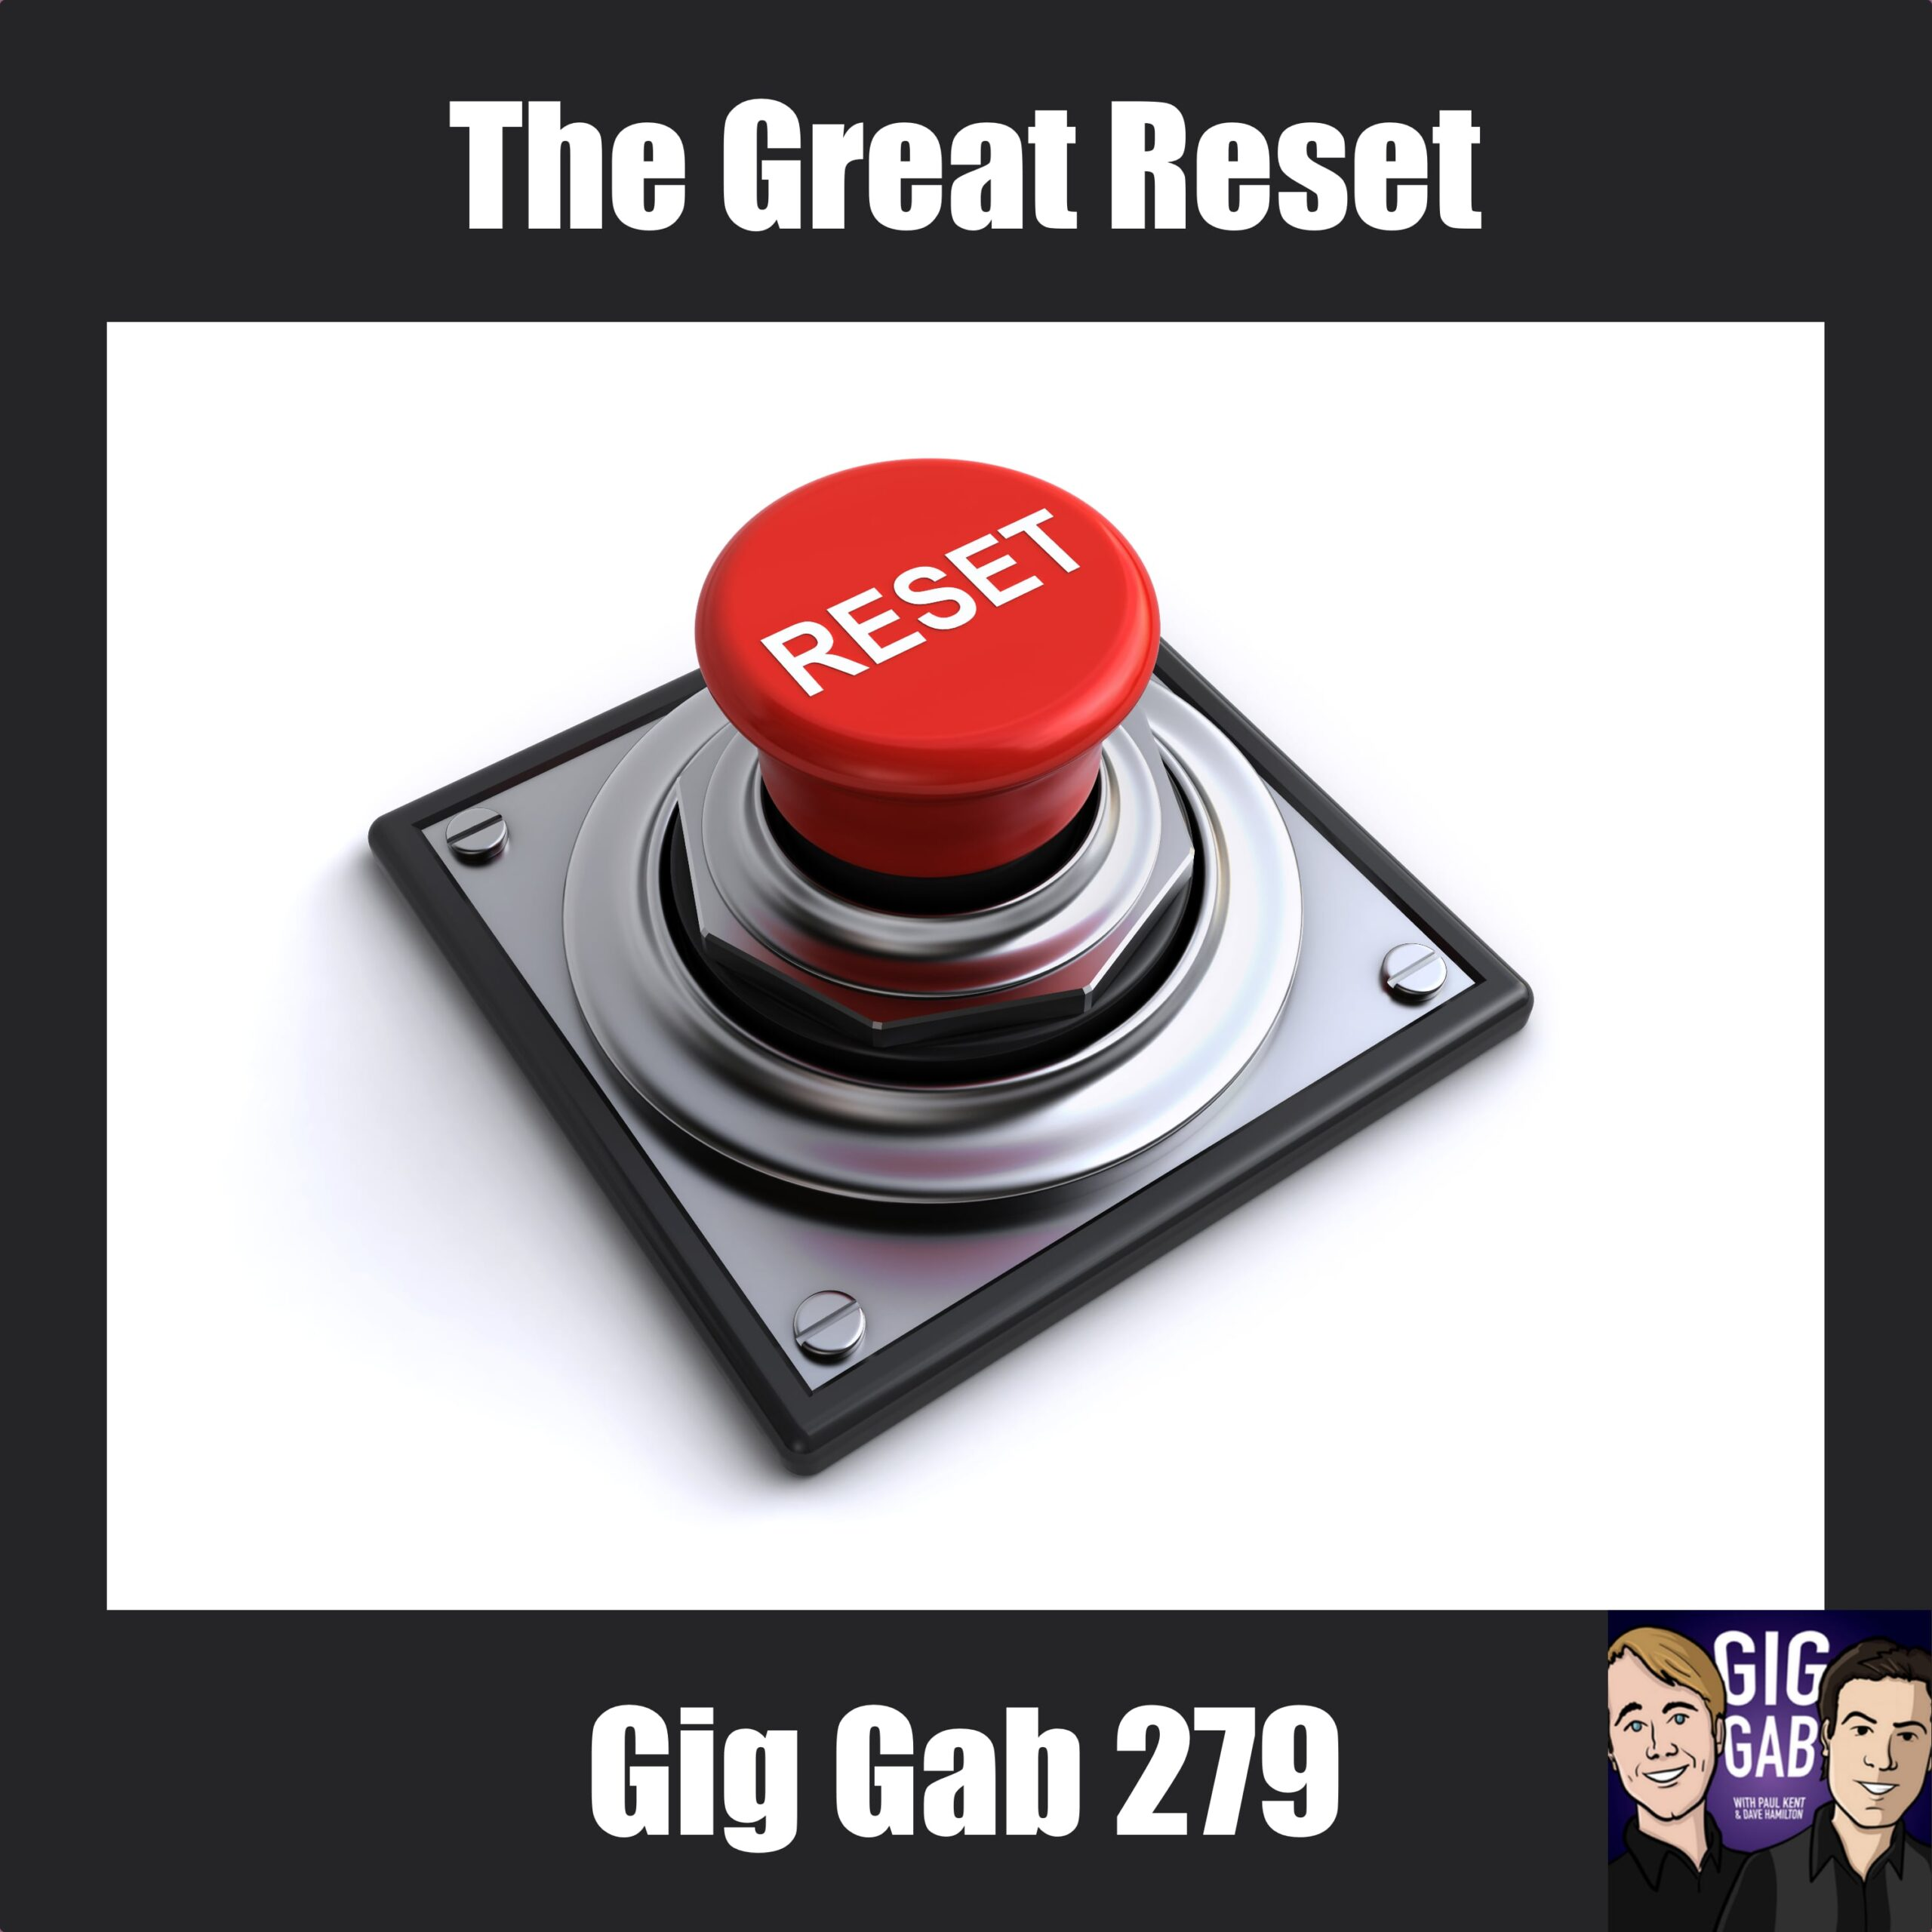 Gig Gab 279 Episode image: The Great Reset